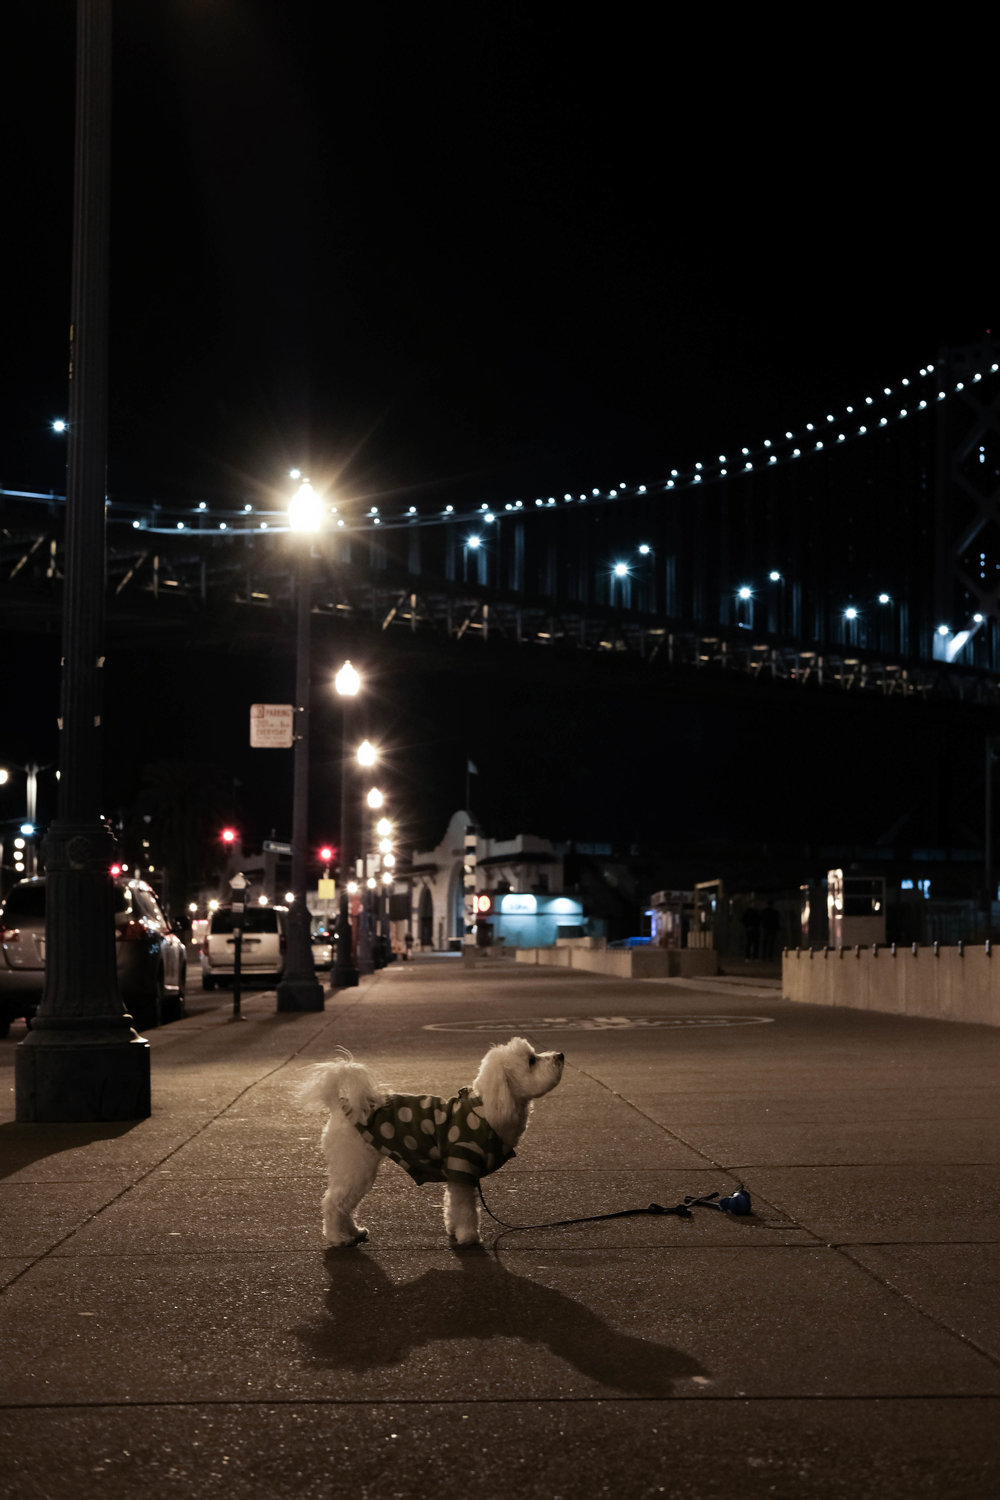 "<p style=""font-family:brandon-grotesque;font-weight:500; font-size:11px; text-center:left; color:light grey;letter-spacing: 1px"">MAY 10, 2017 • LATE NIGHT PONDERING • 📍 San Francisco, CA</p>"